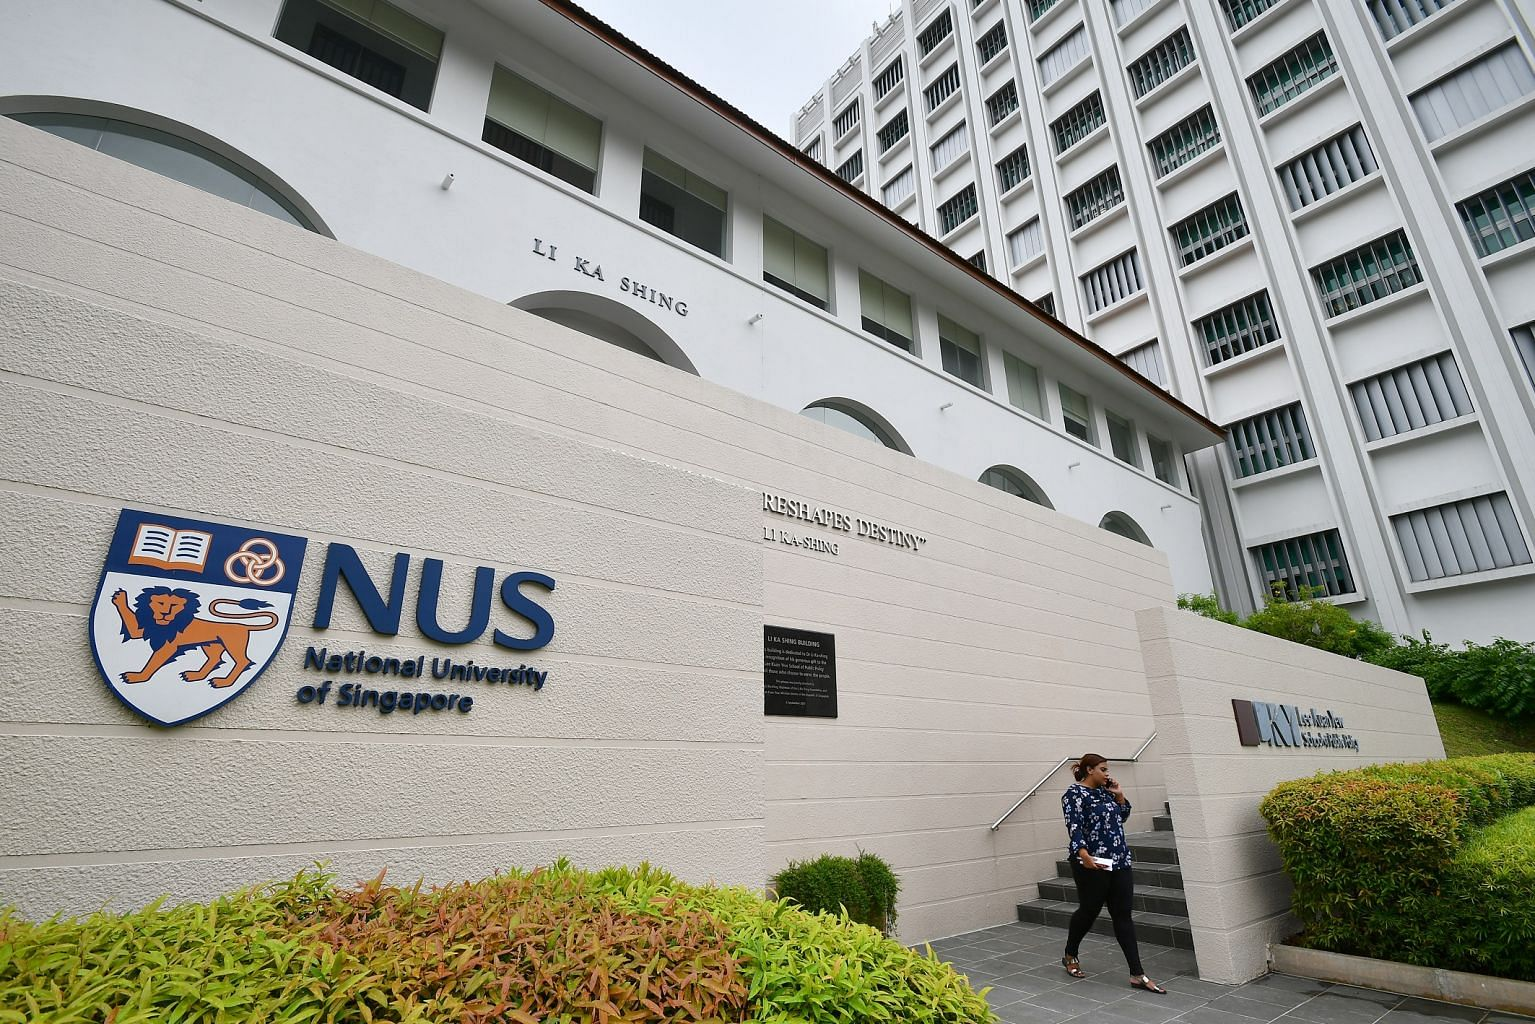 Students Welcome Nus Move To Award Bonus Admission Points For St Choice Courses Singapore News Top Stories The Straits Times